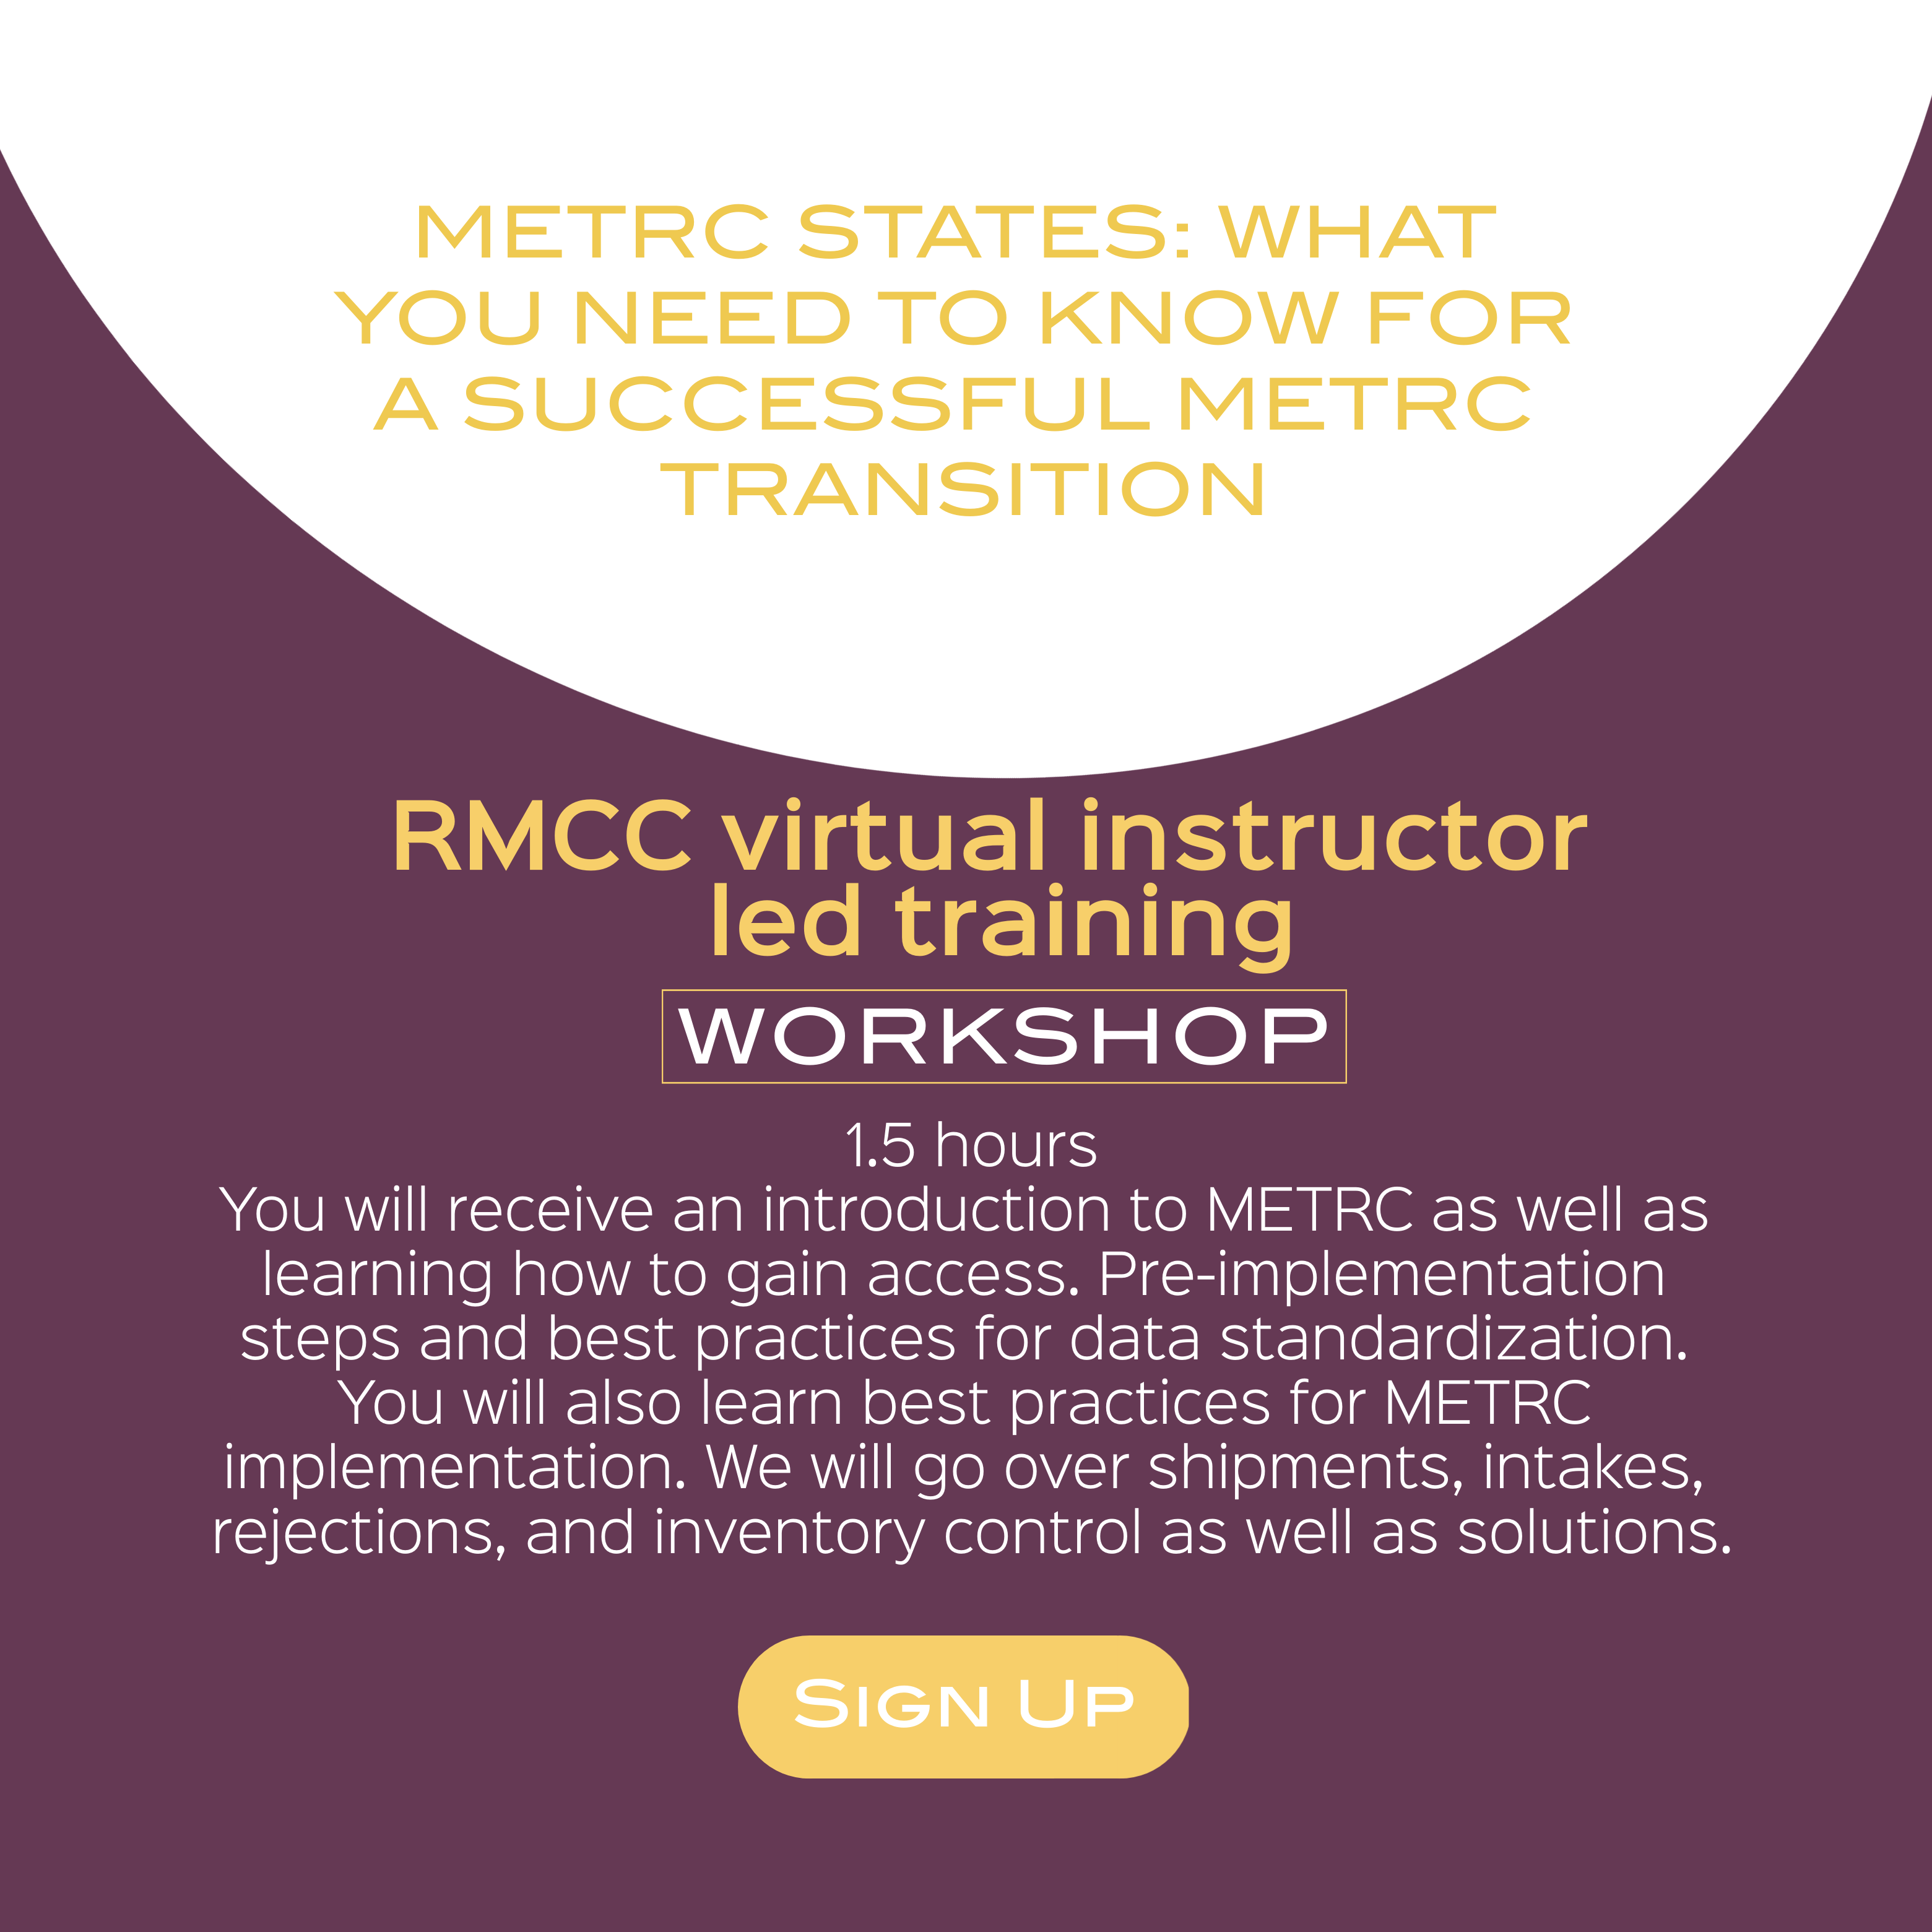 metrc states what you need to know for a successful metrc transition